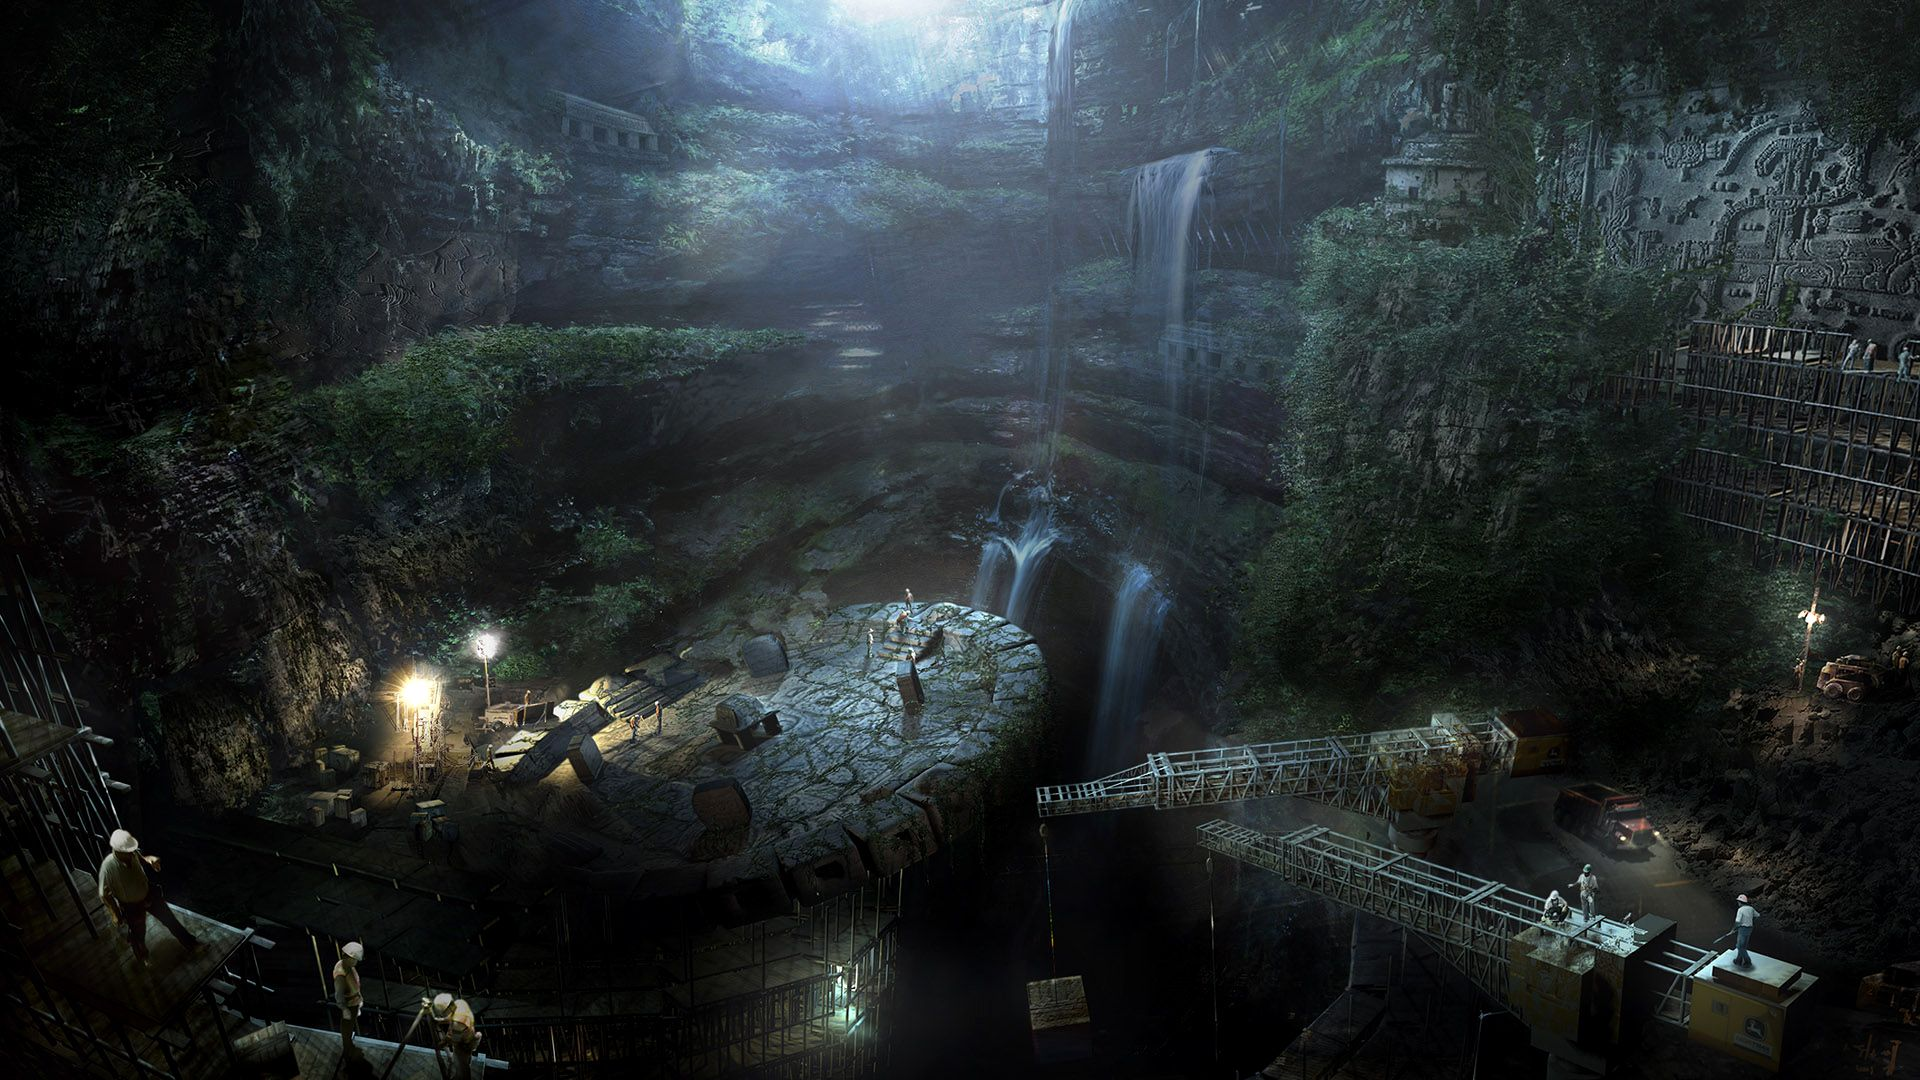 Fantasy Wallpaper 1920x1080 Matte Painting Fantasy Pictures Fantastic Wallpapers